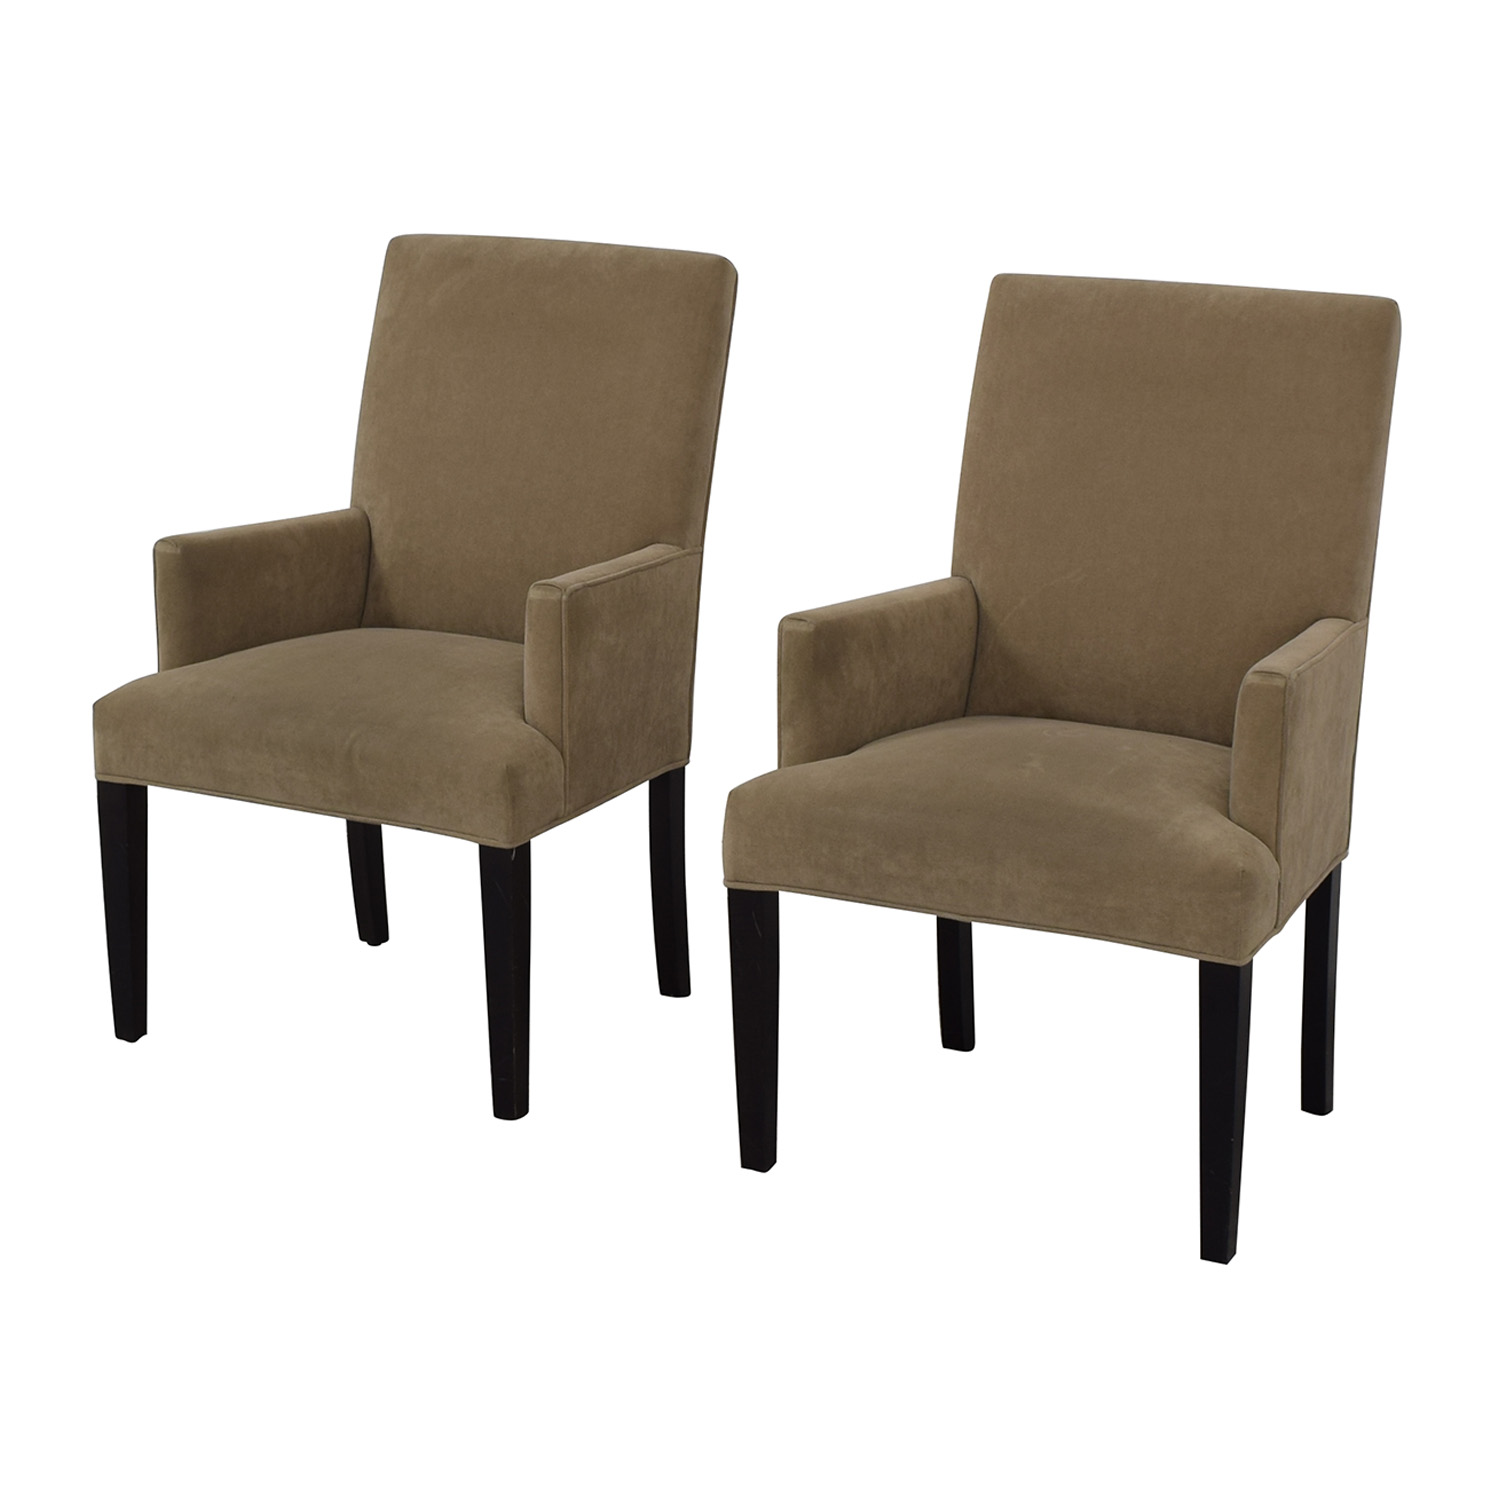 buy Crate & Barrel Tan Dining Chairs Crate & Barrel